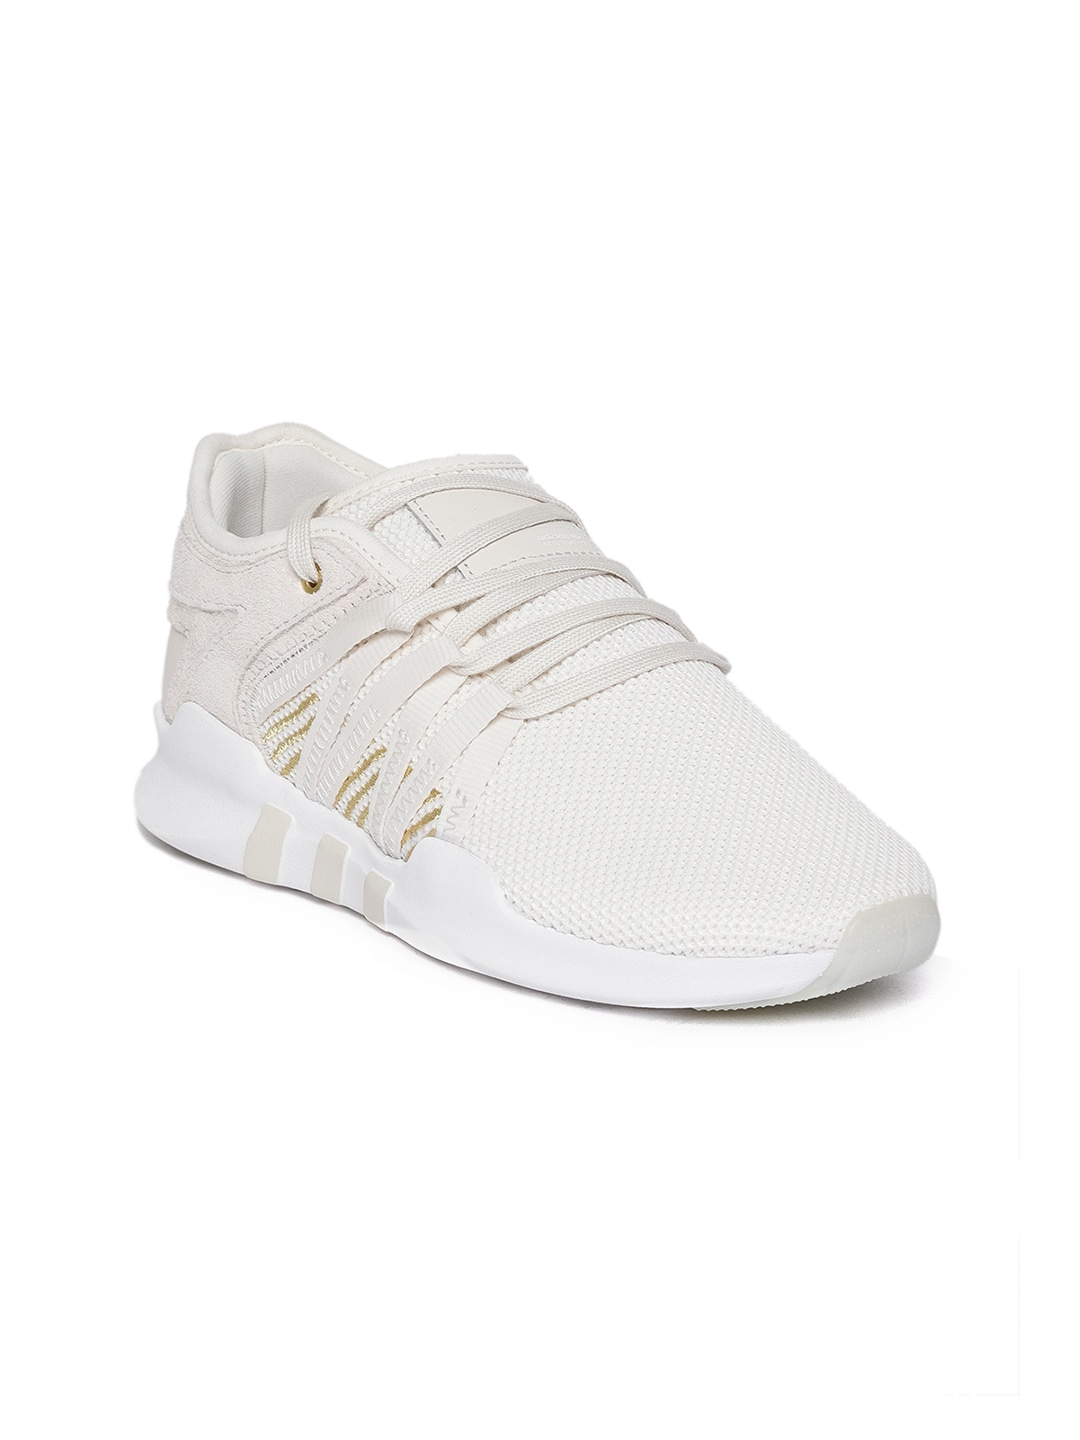 ADIDAS Originals Women Off-White EQT ADV Racing Sneakers 8b5ad7fd0